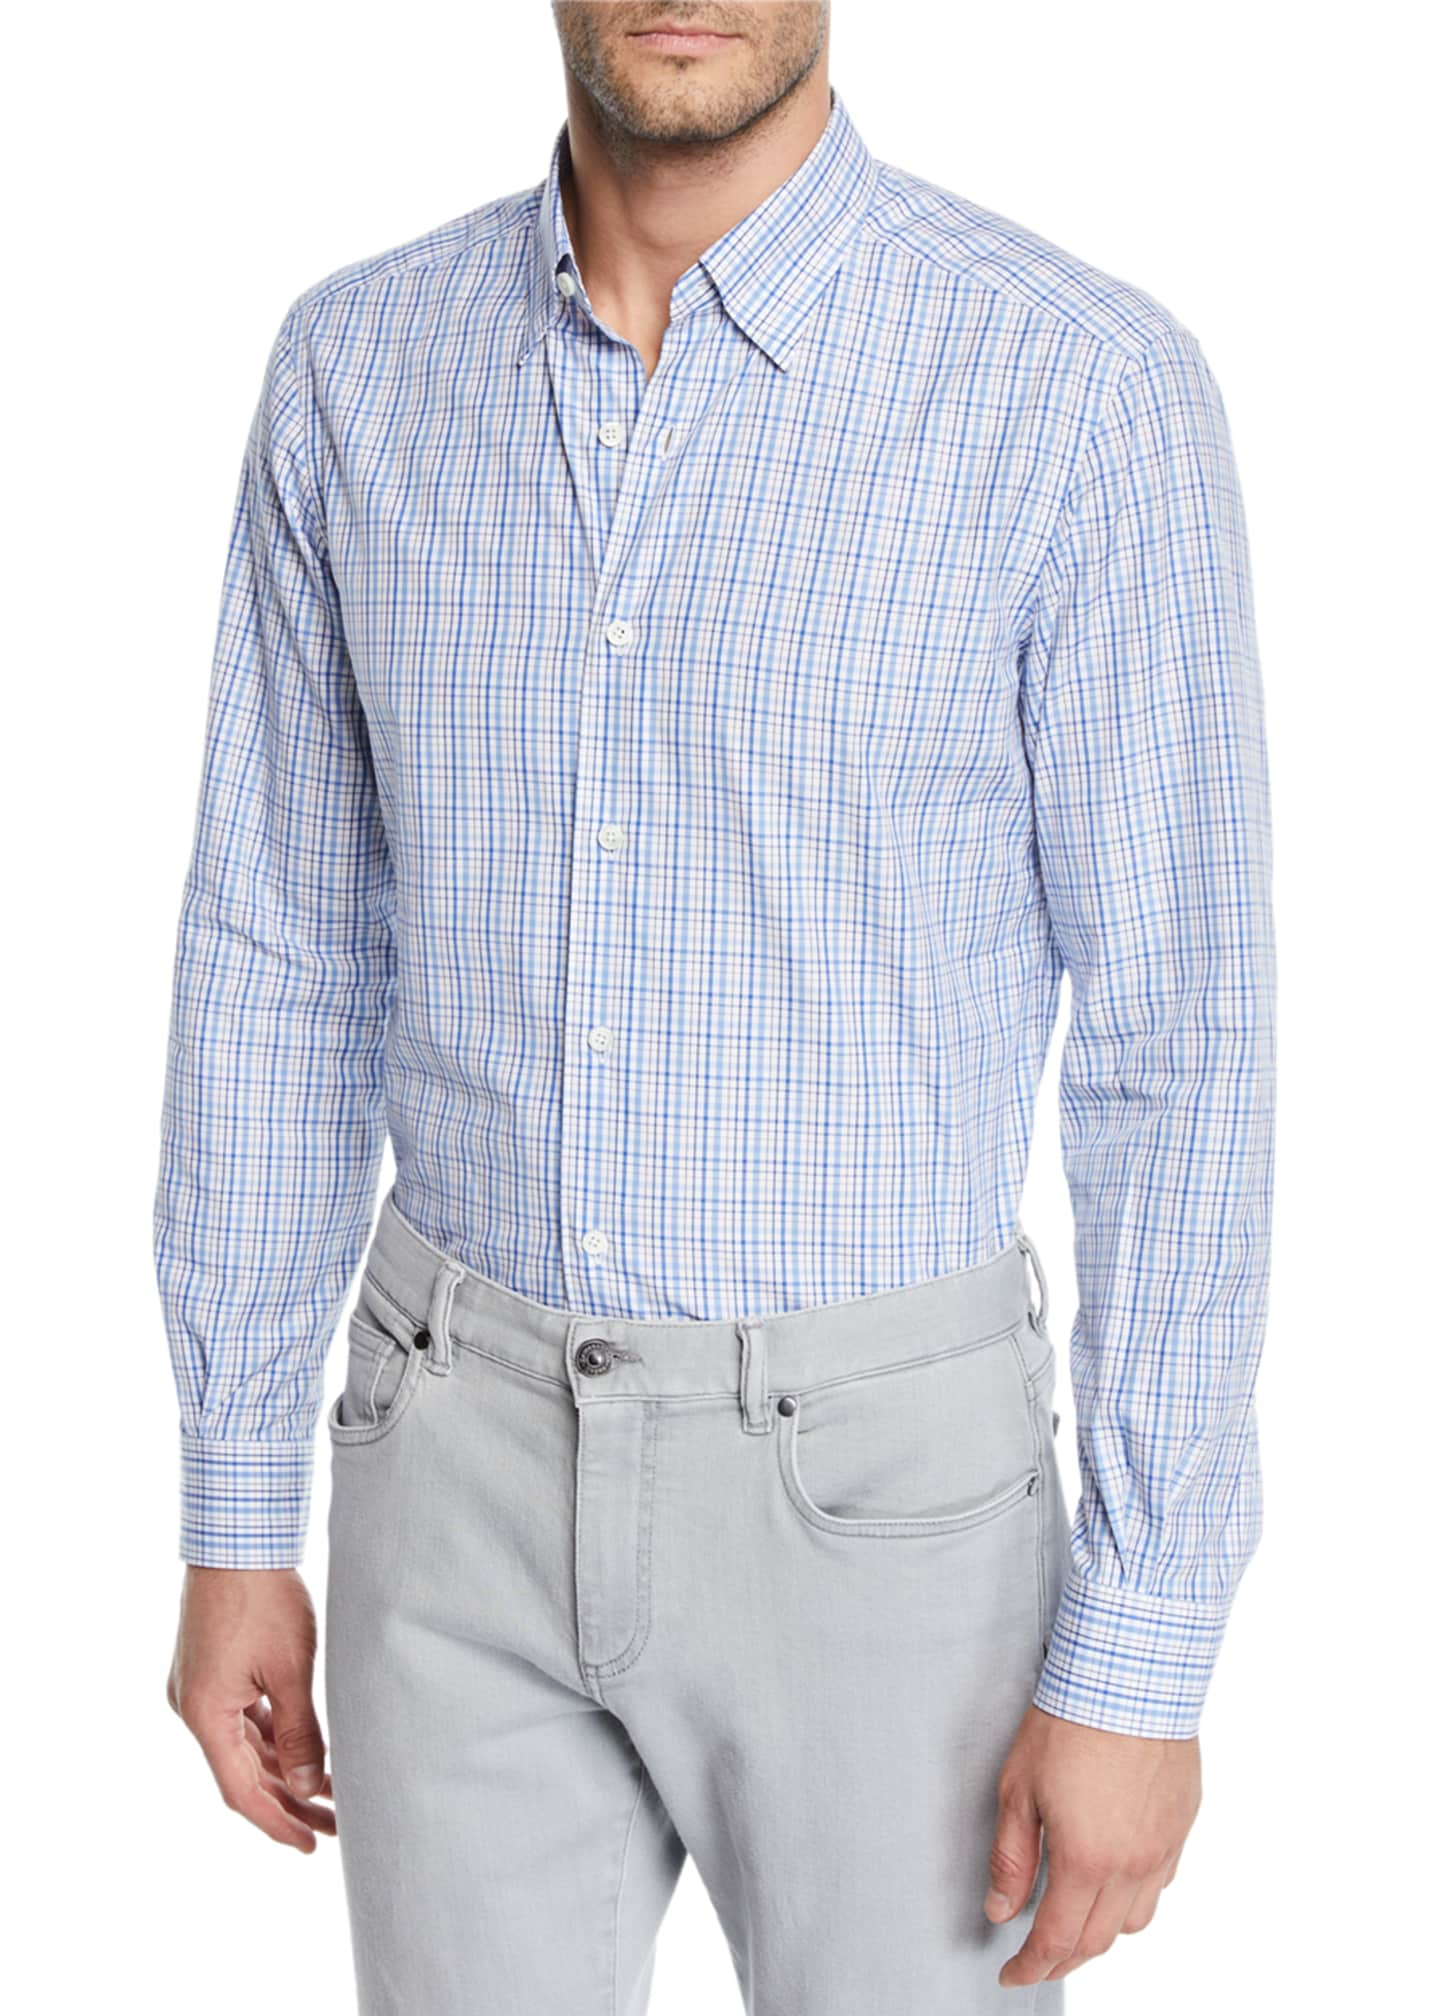 Ermenegildo Zegna Men's Cento Quaranta Check Cotton Sport